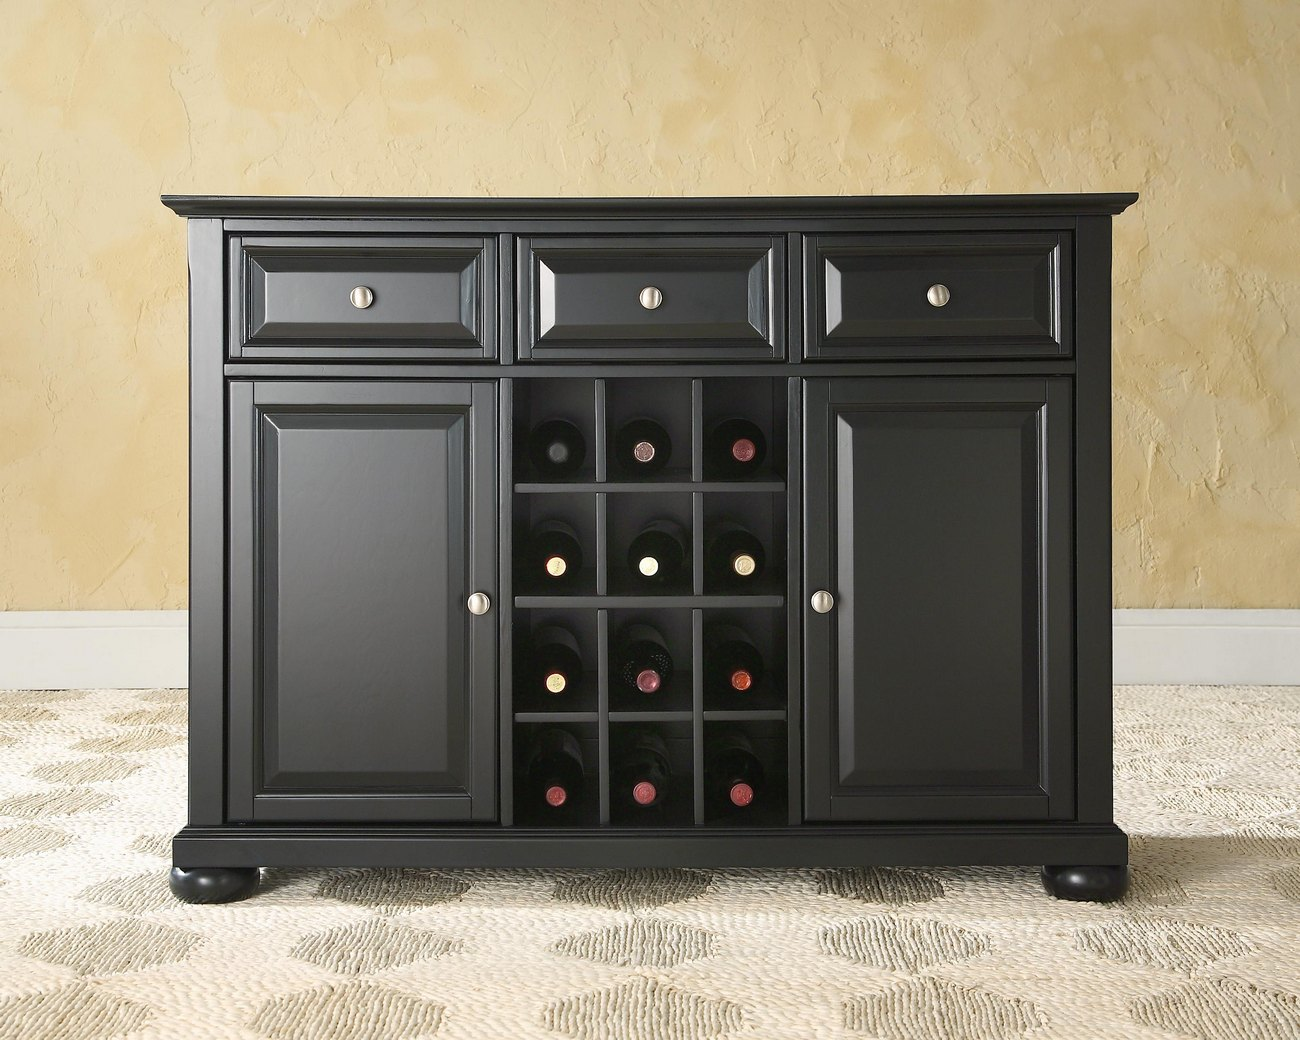 Alexandria Buffet Server / Sideboard Cabinet w/ Wine Storage in Black Finish - Crosley KF42001ABK